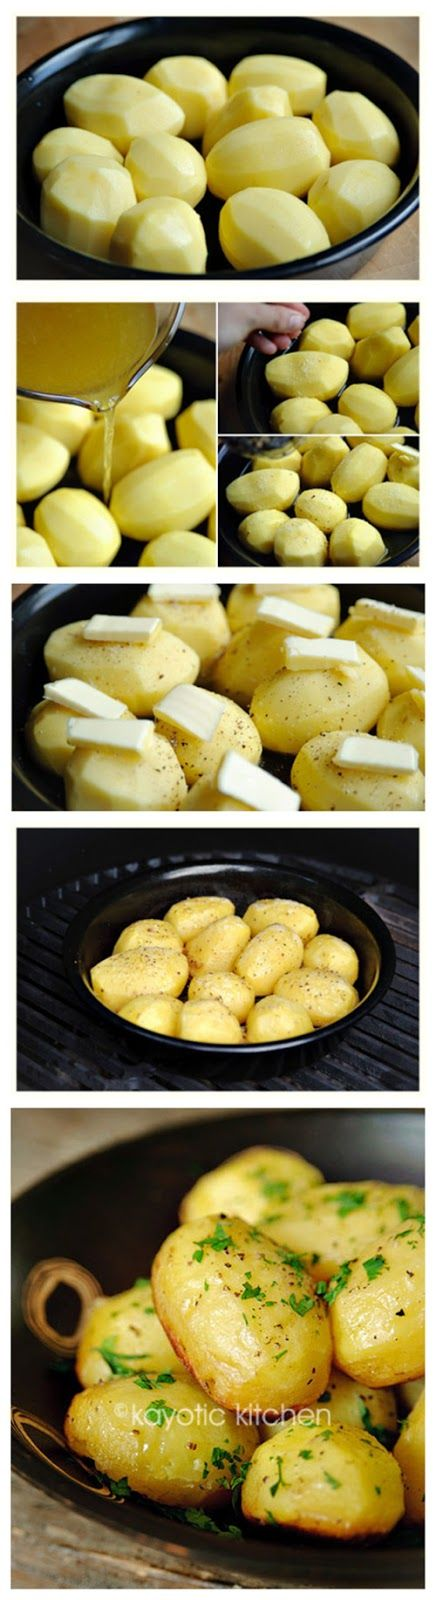 Place the peeled and washed (even-sized) potatoes in ovenproof pan. Make sure they fit snuggly together.Add the grated garlic or powder to t...